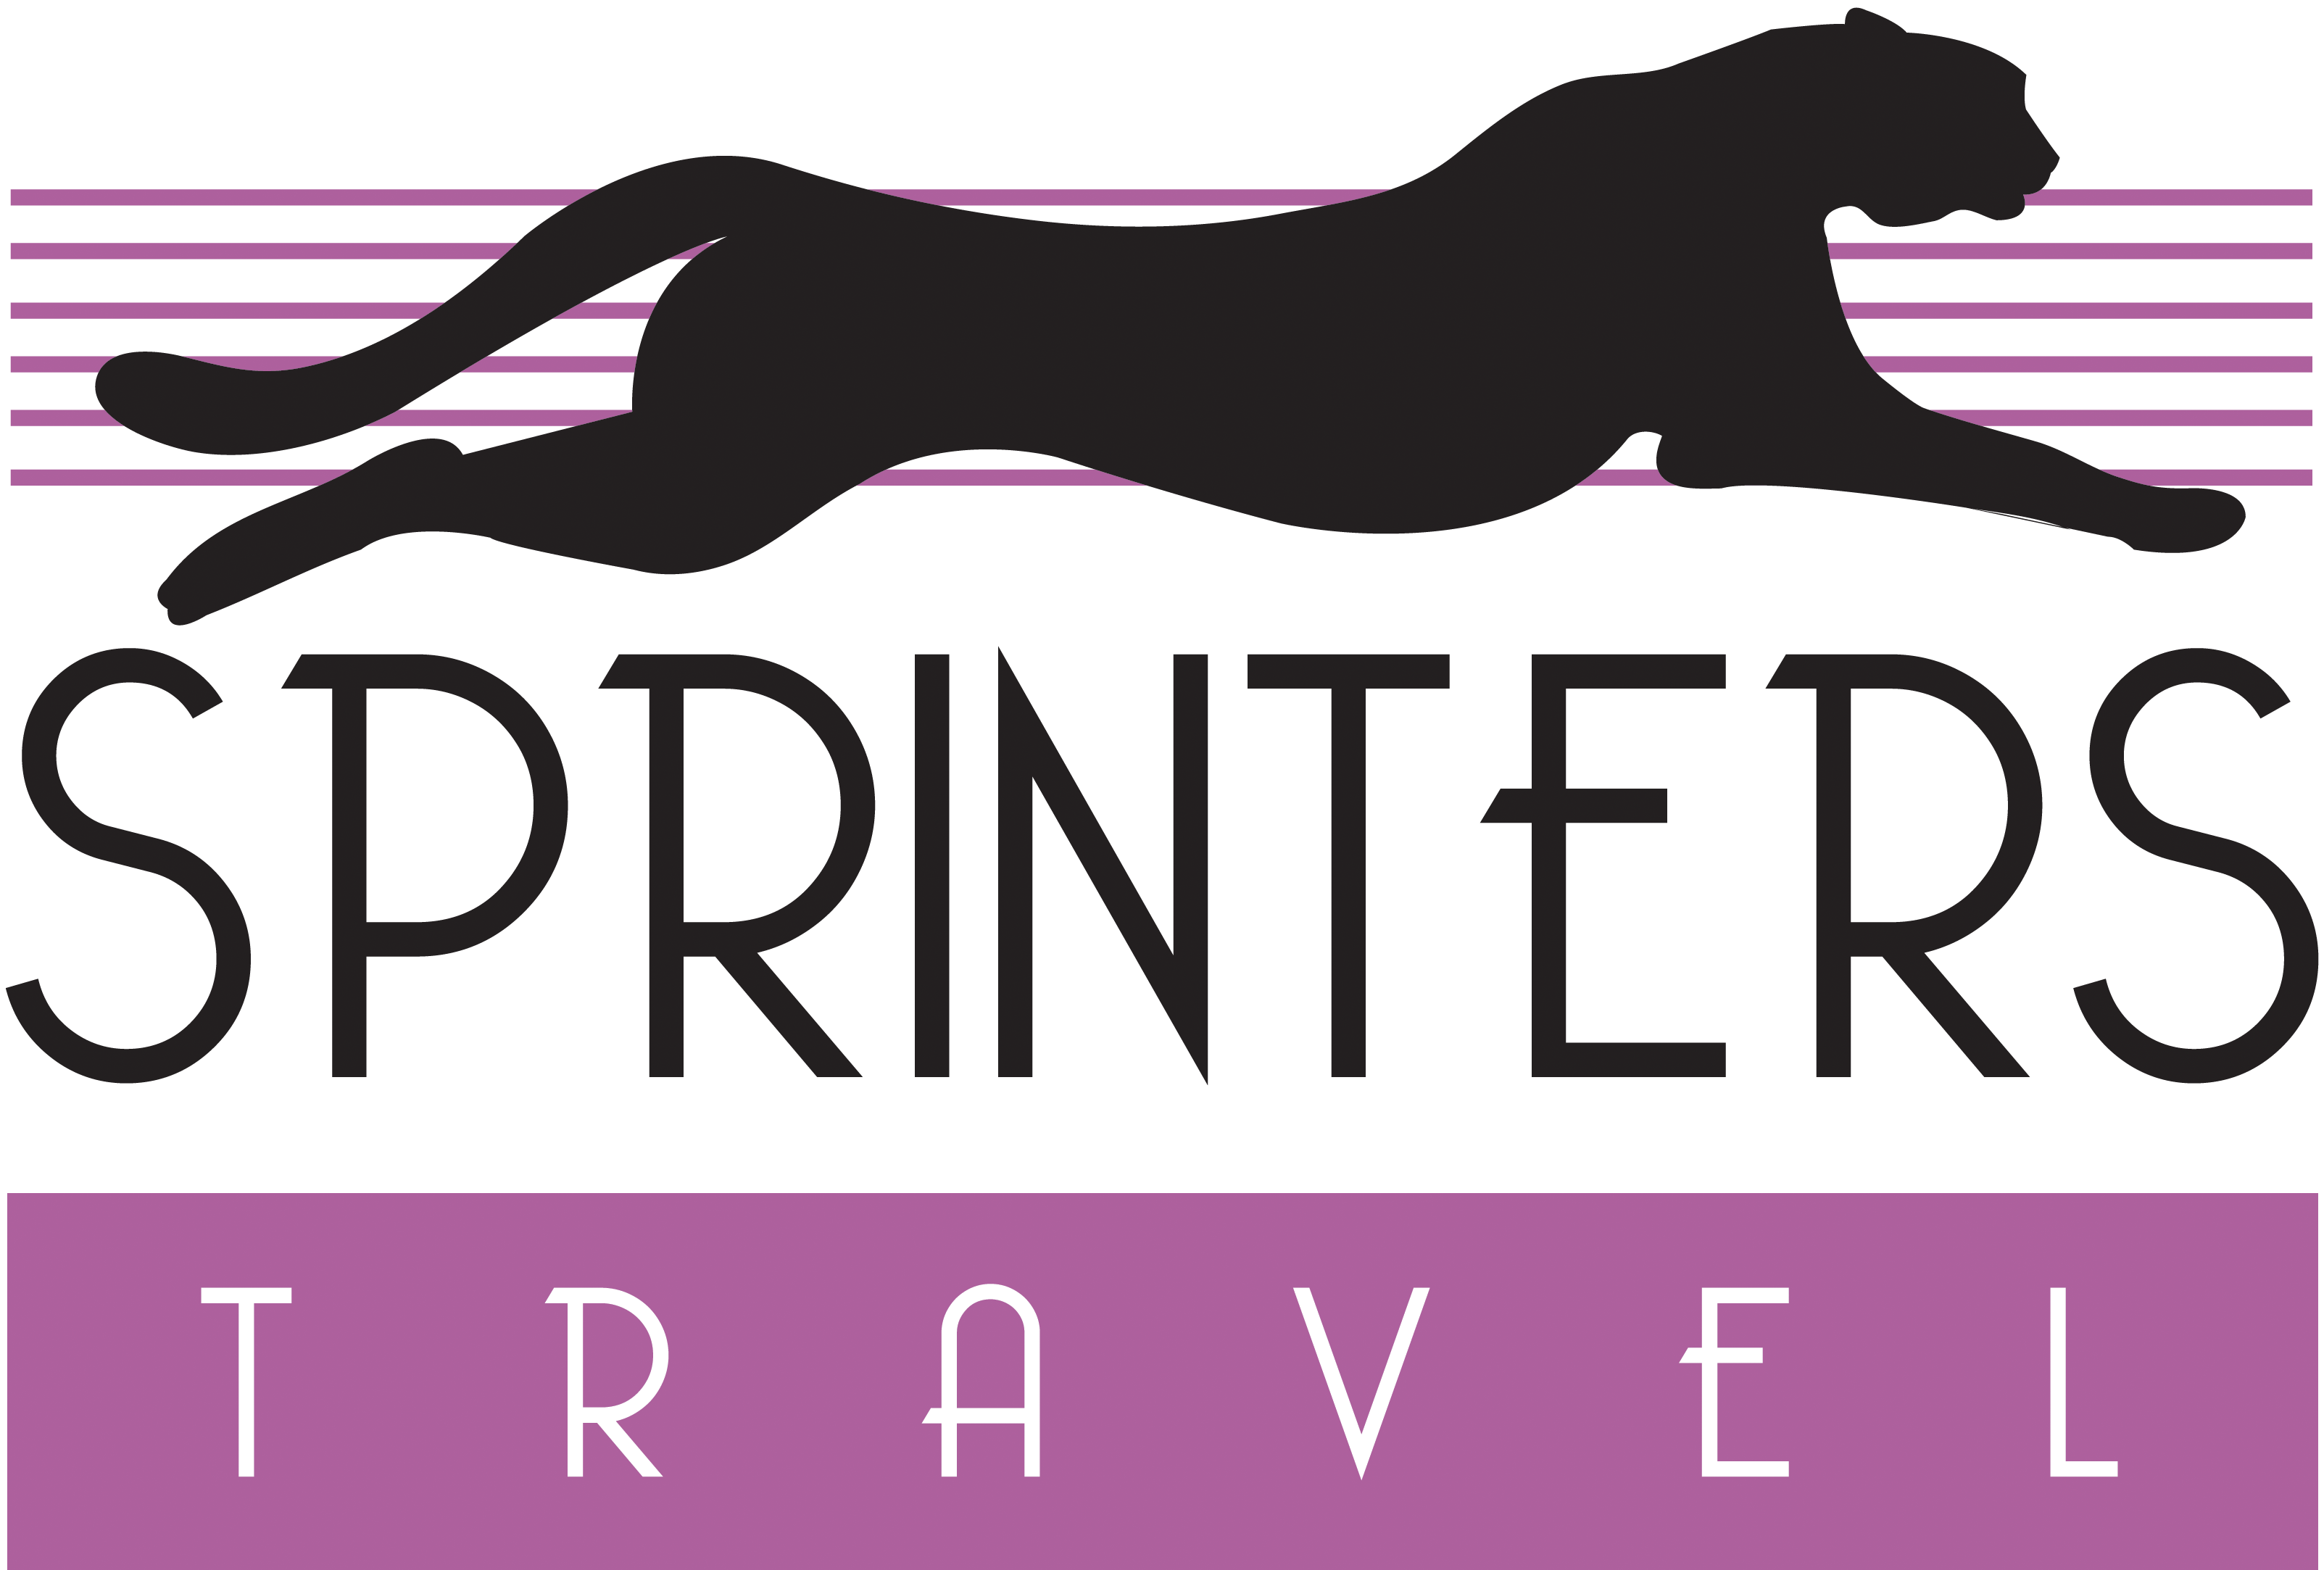 Sprinters Travel | adrank, Author at Sprinters Travel - Page 2 of 2